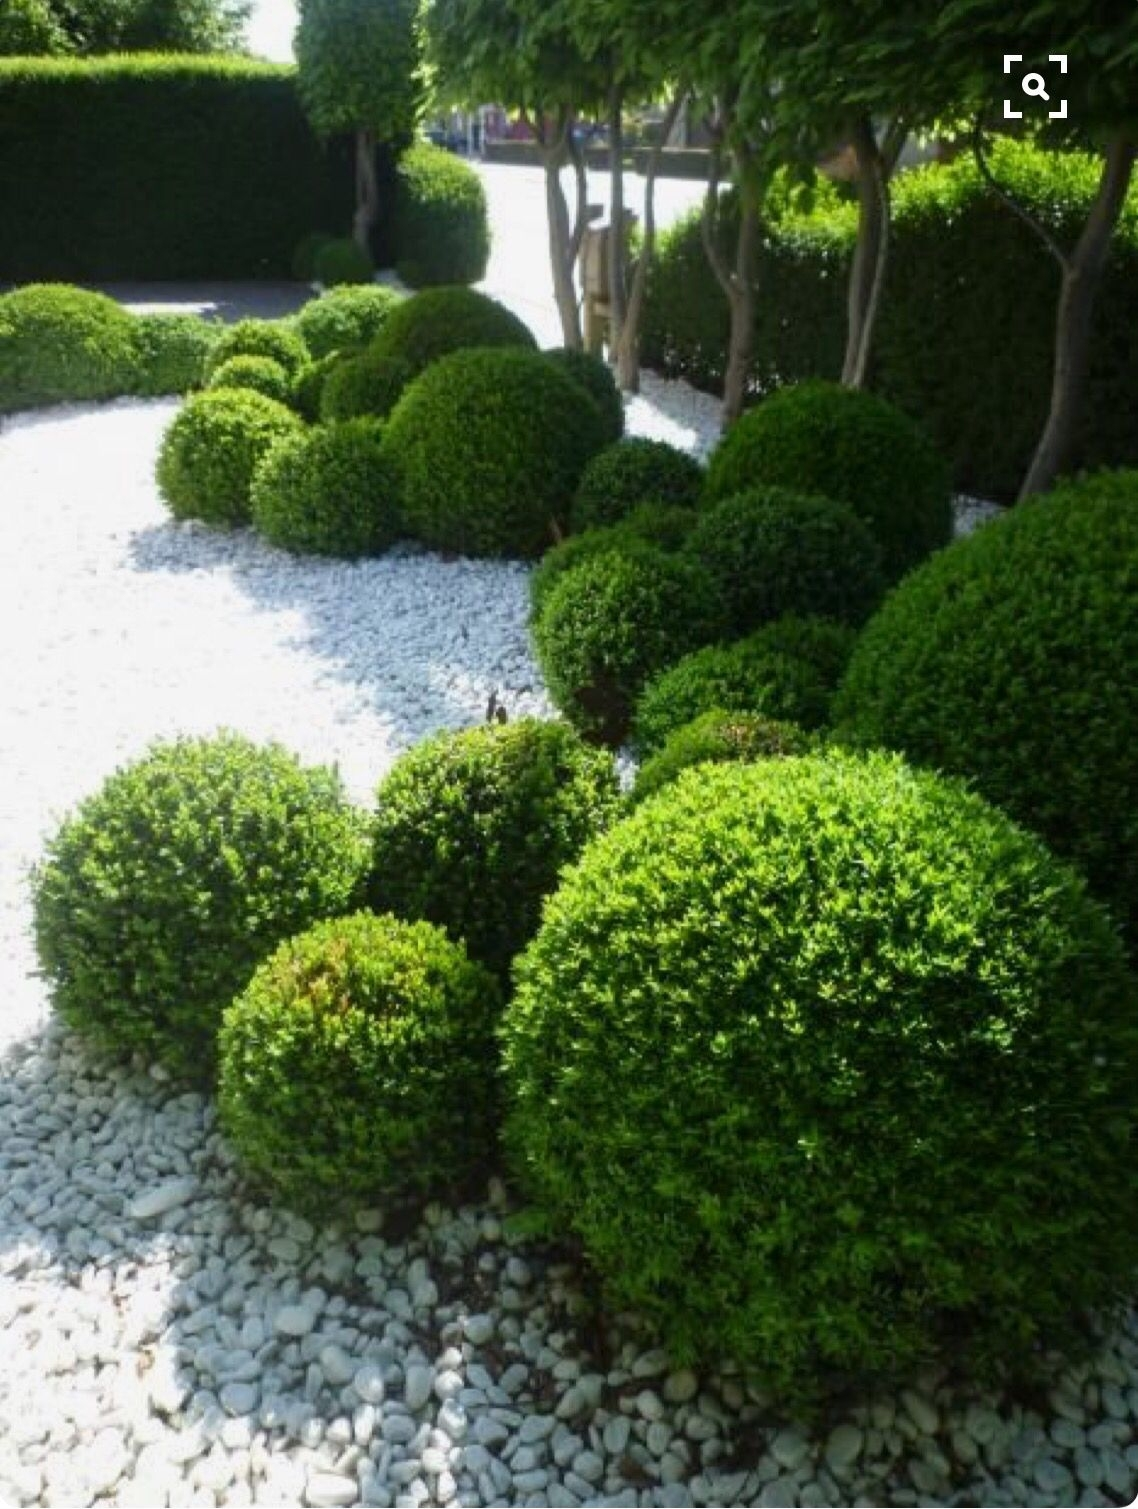 Balls Of Topiary In A Modern Minimalist Garden Design | Landscaping for Zen Garden Design Balls